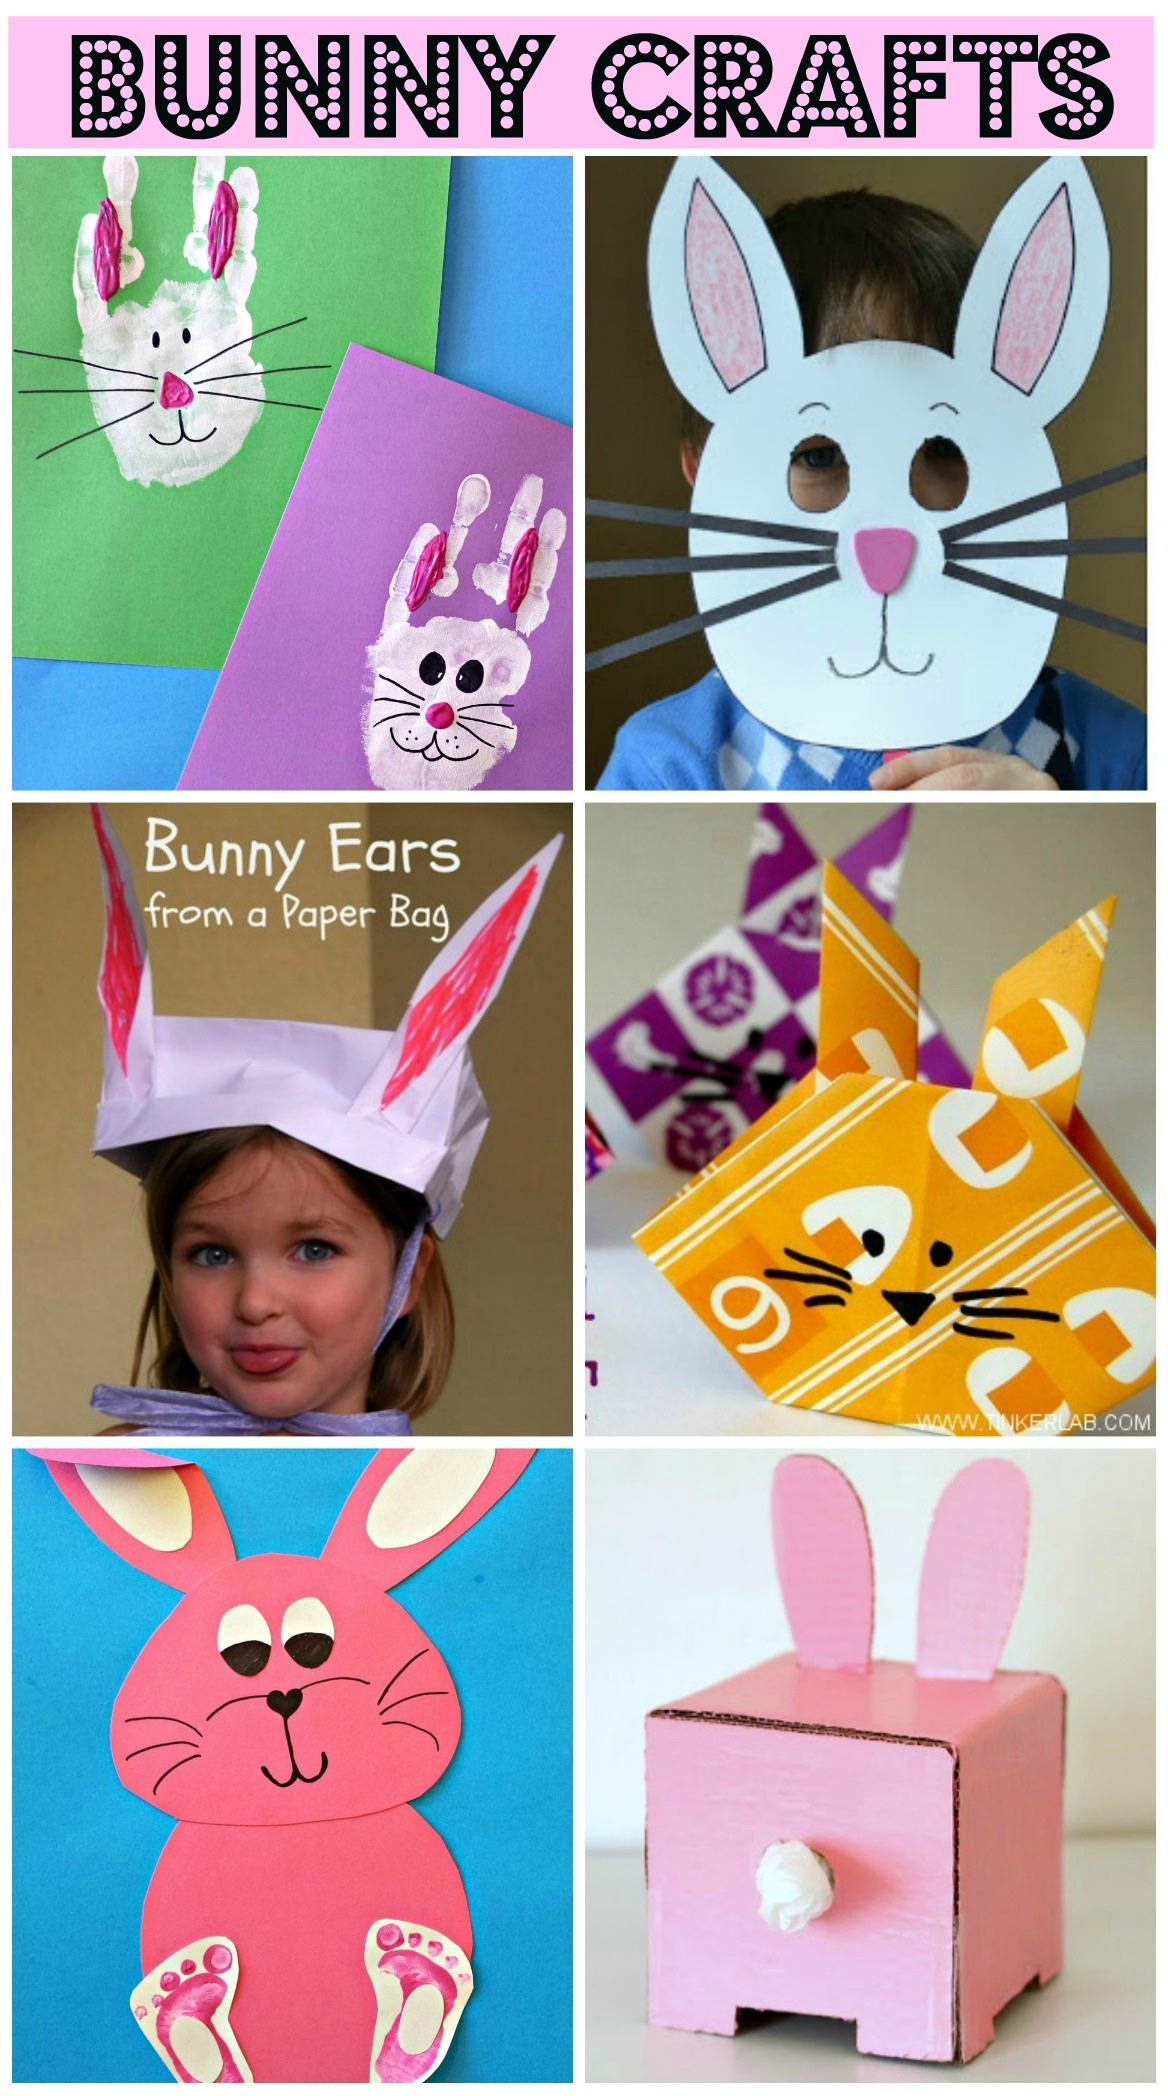 Easy Bunny Crafts for Kids - Crafty Morning